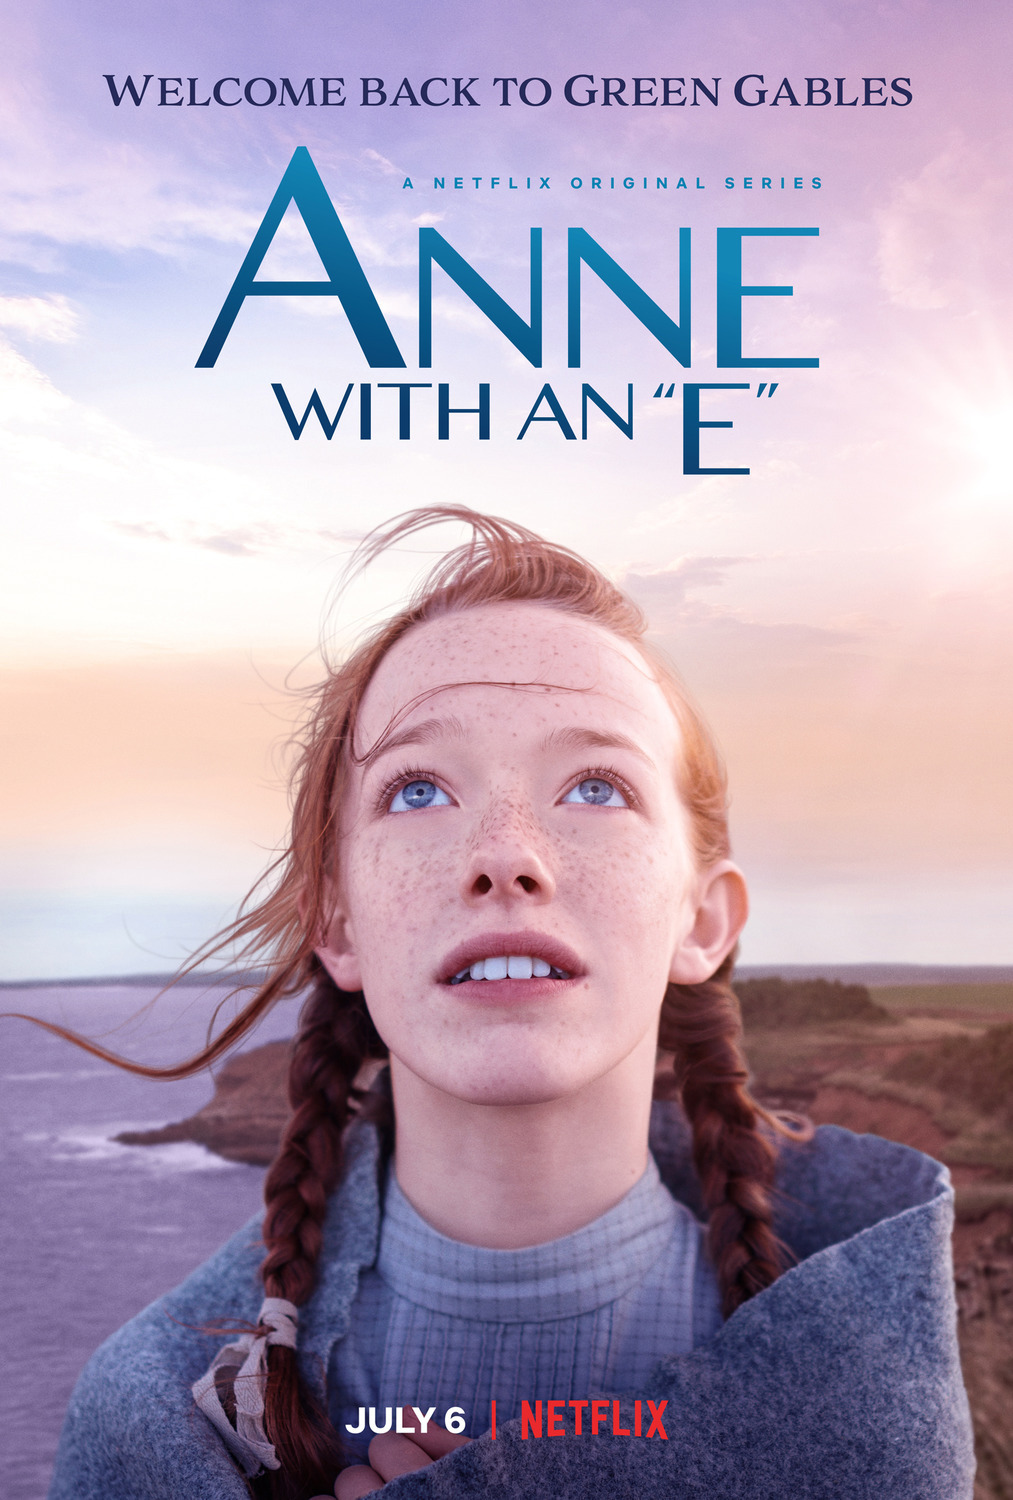 Anne (TV Series 2017– ) - IMDb